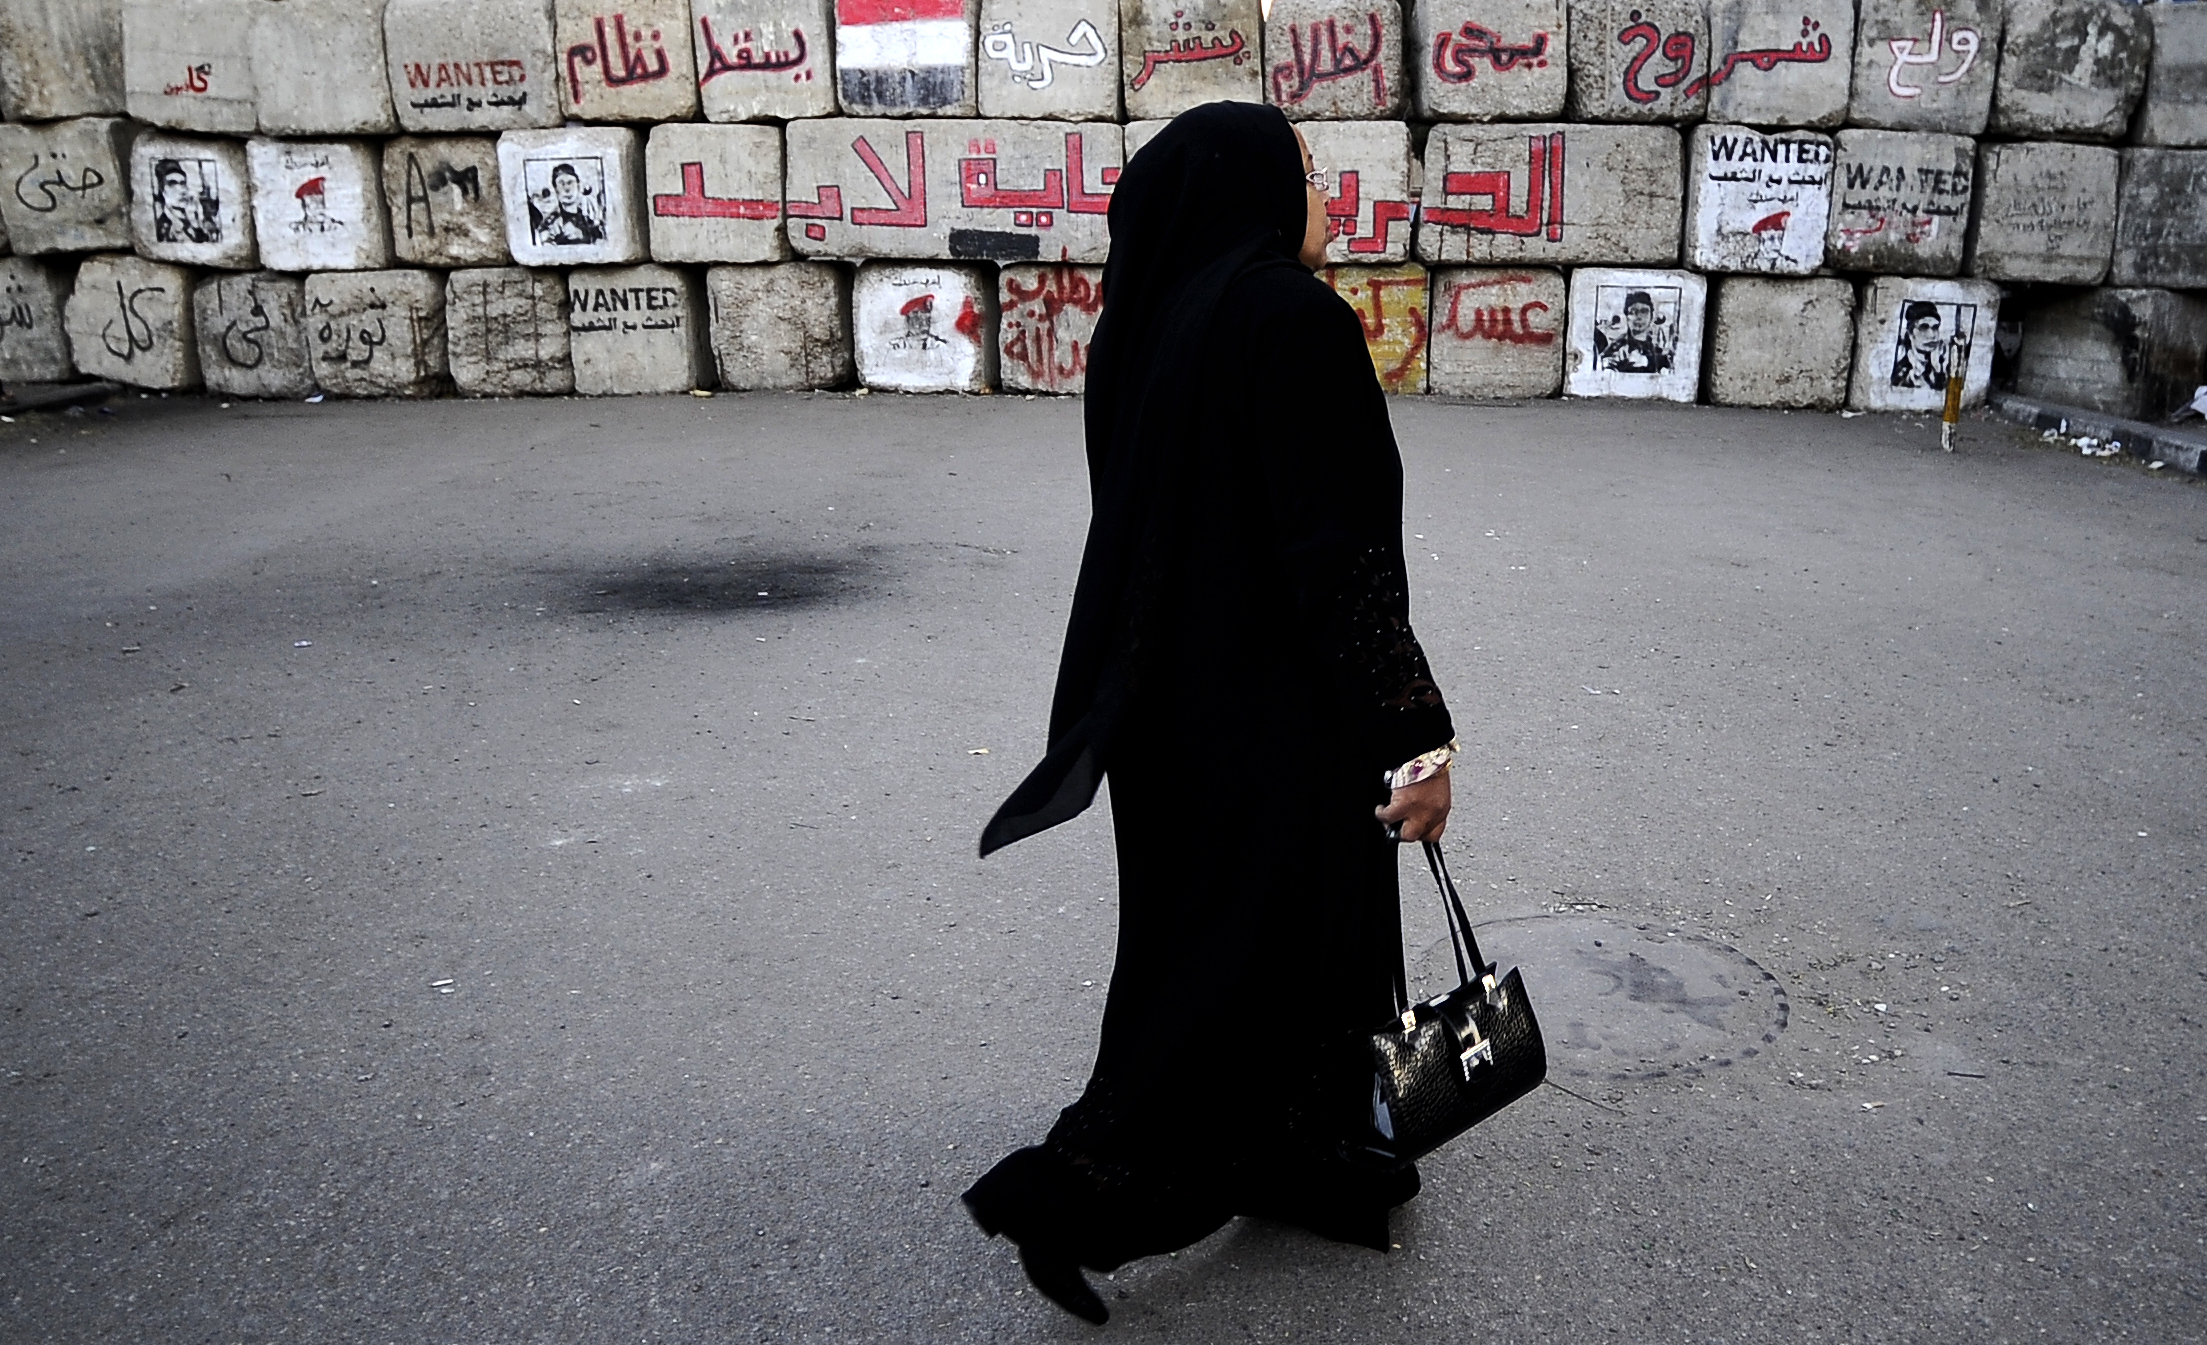 A woman near Cairo's Tahrir Square in 2011.